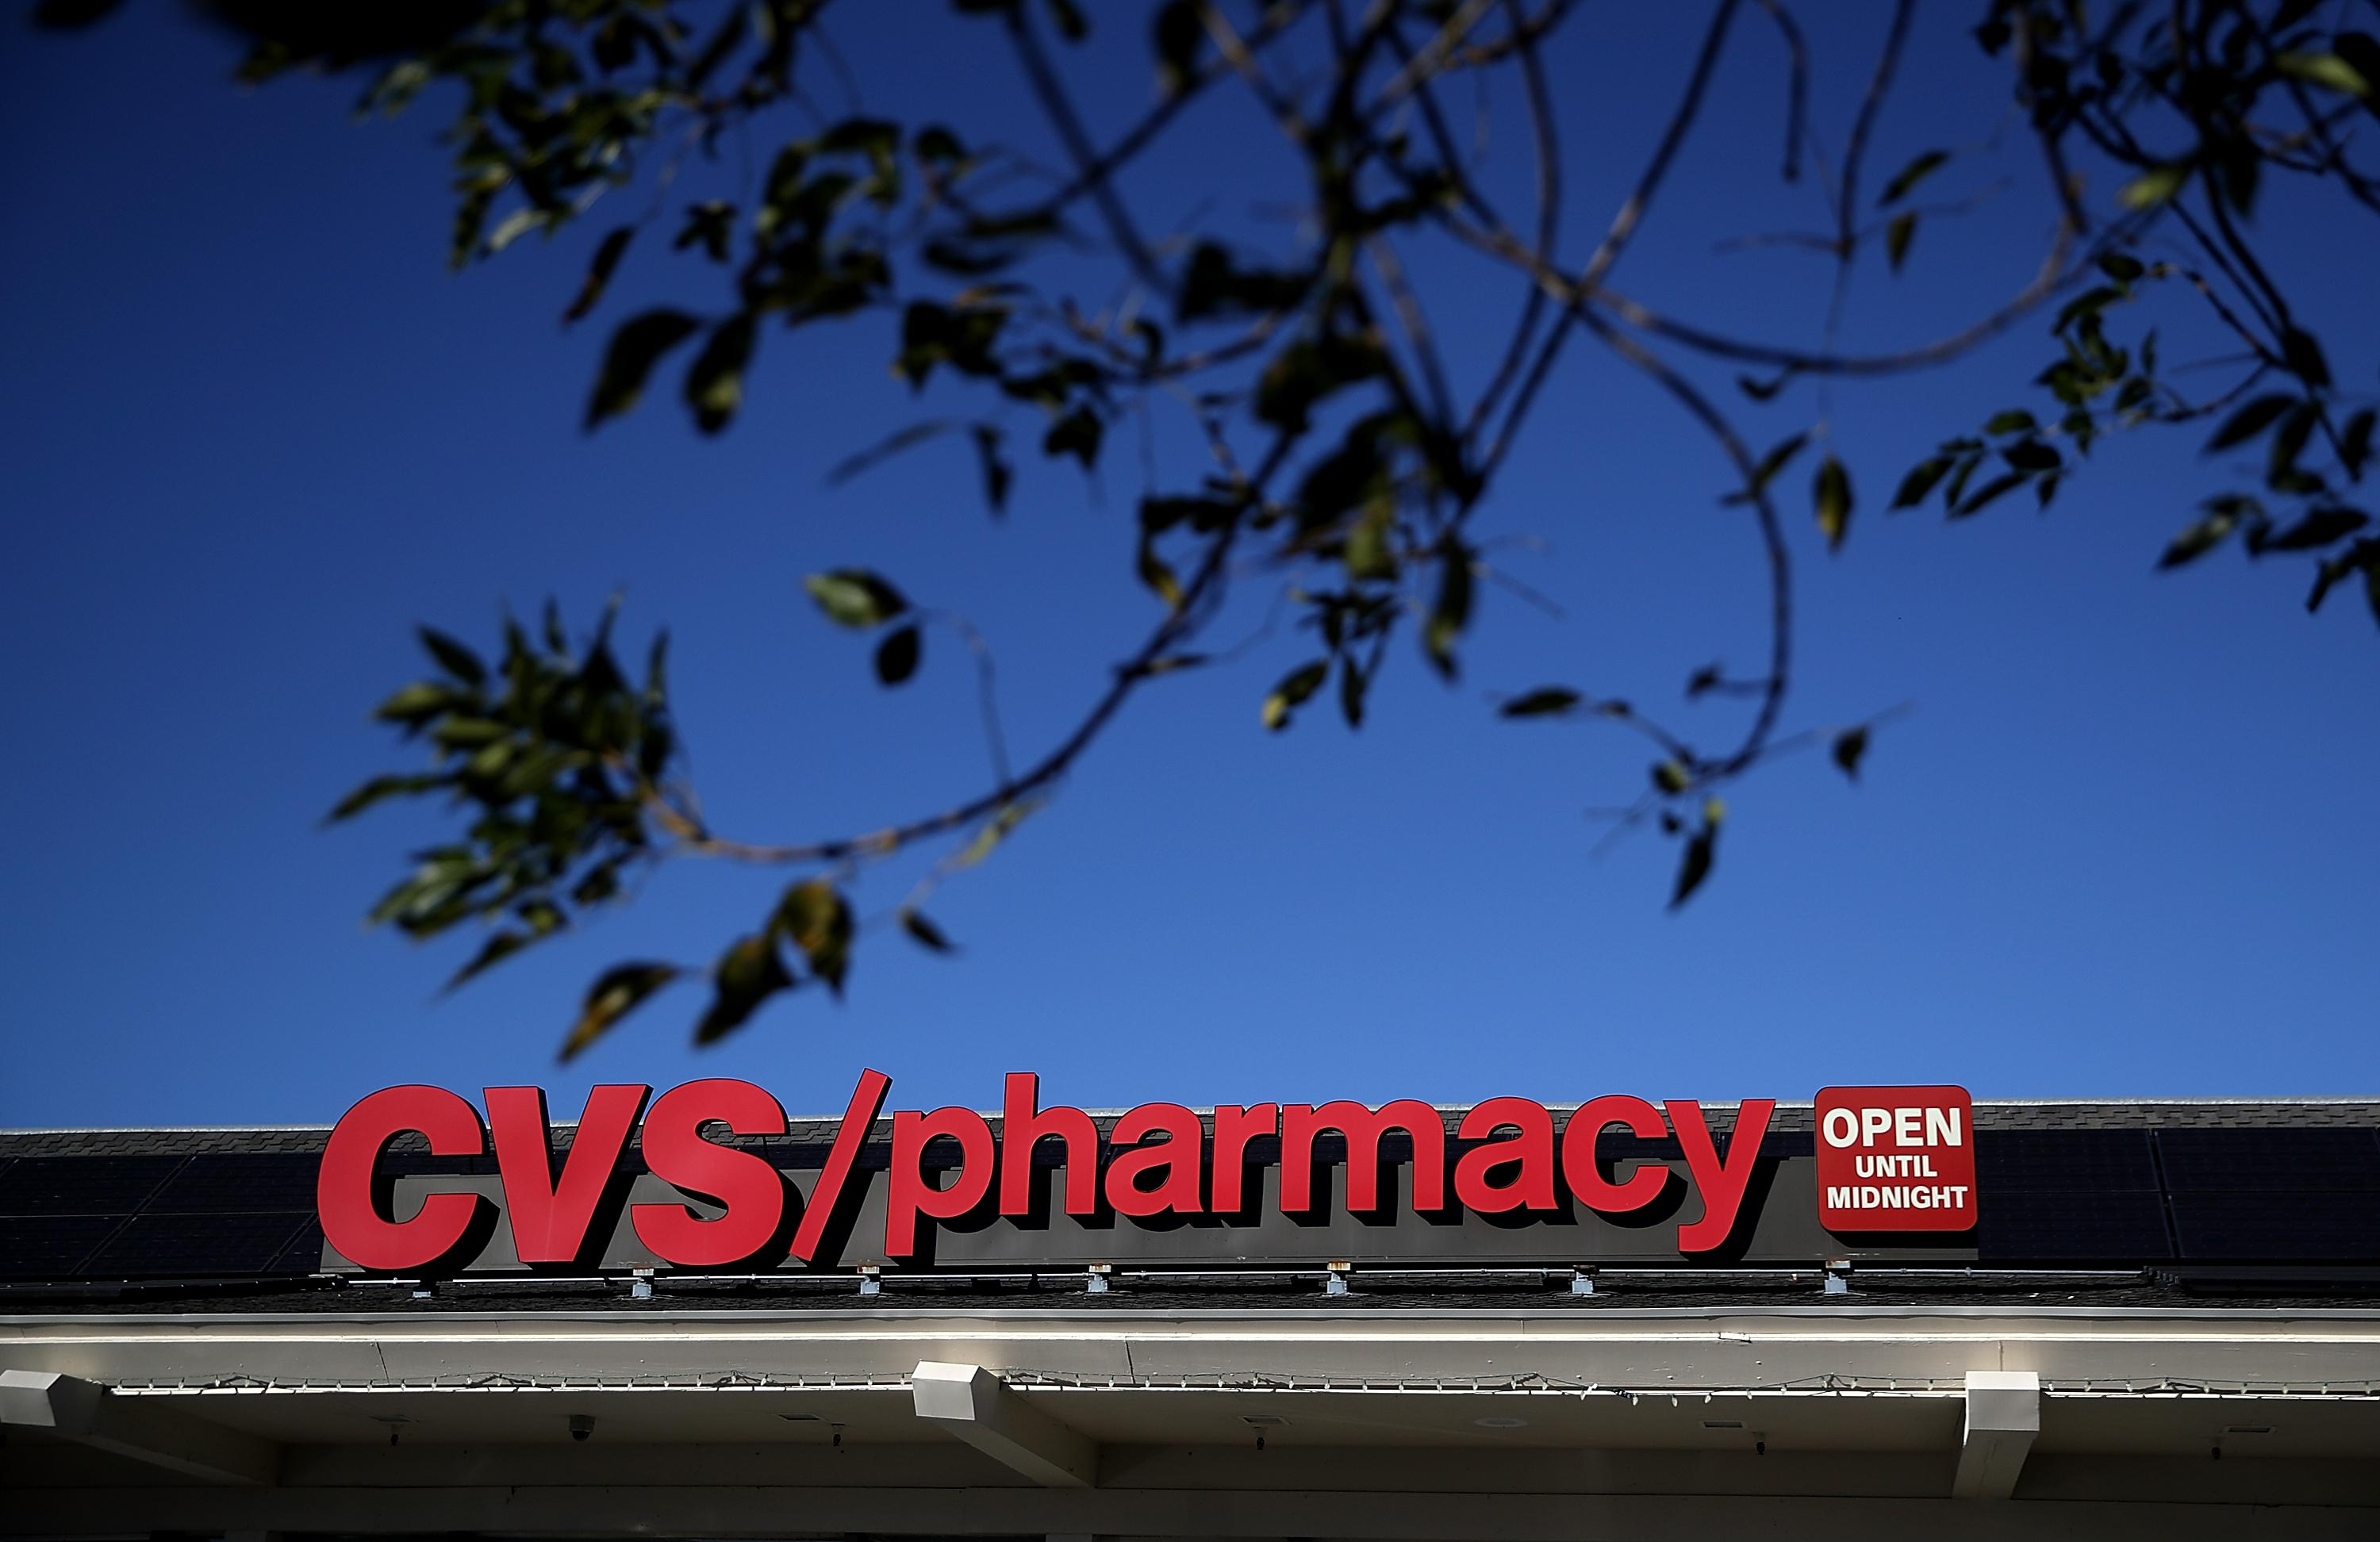 SAN ANSELMO, CA - DECEMBER 04:  A sign is posted on the exterior of a CVS Pharmacy on December 4, 2017 in San Anselmo, California. Drugstore chain CVS Health Corp announced plans on Sunday to acquire health insurer Aetna Inc for $69 billion.  (Photo by Justin Sullivan/Getty Images)